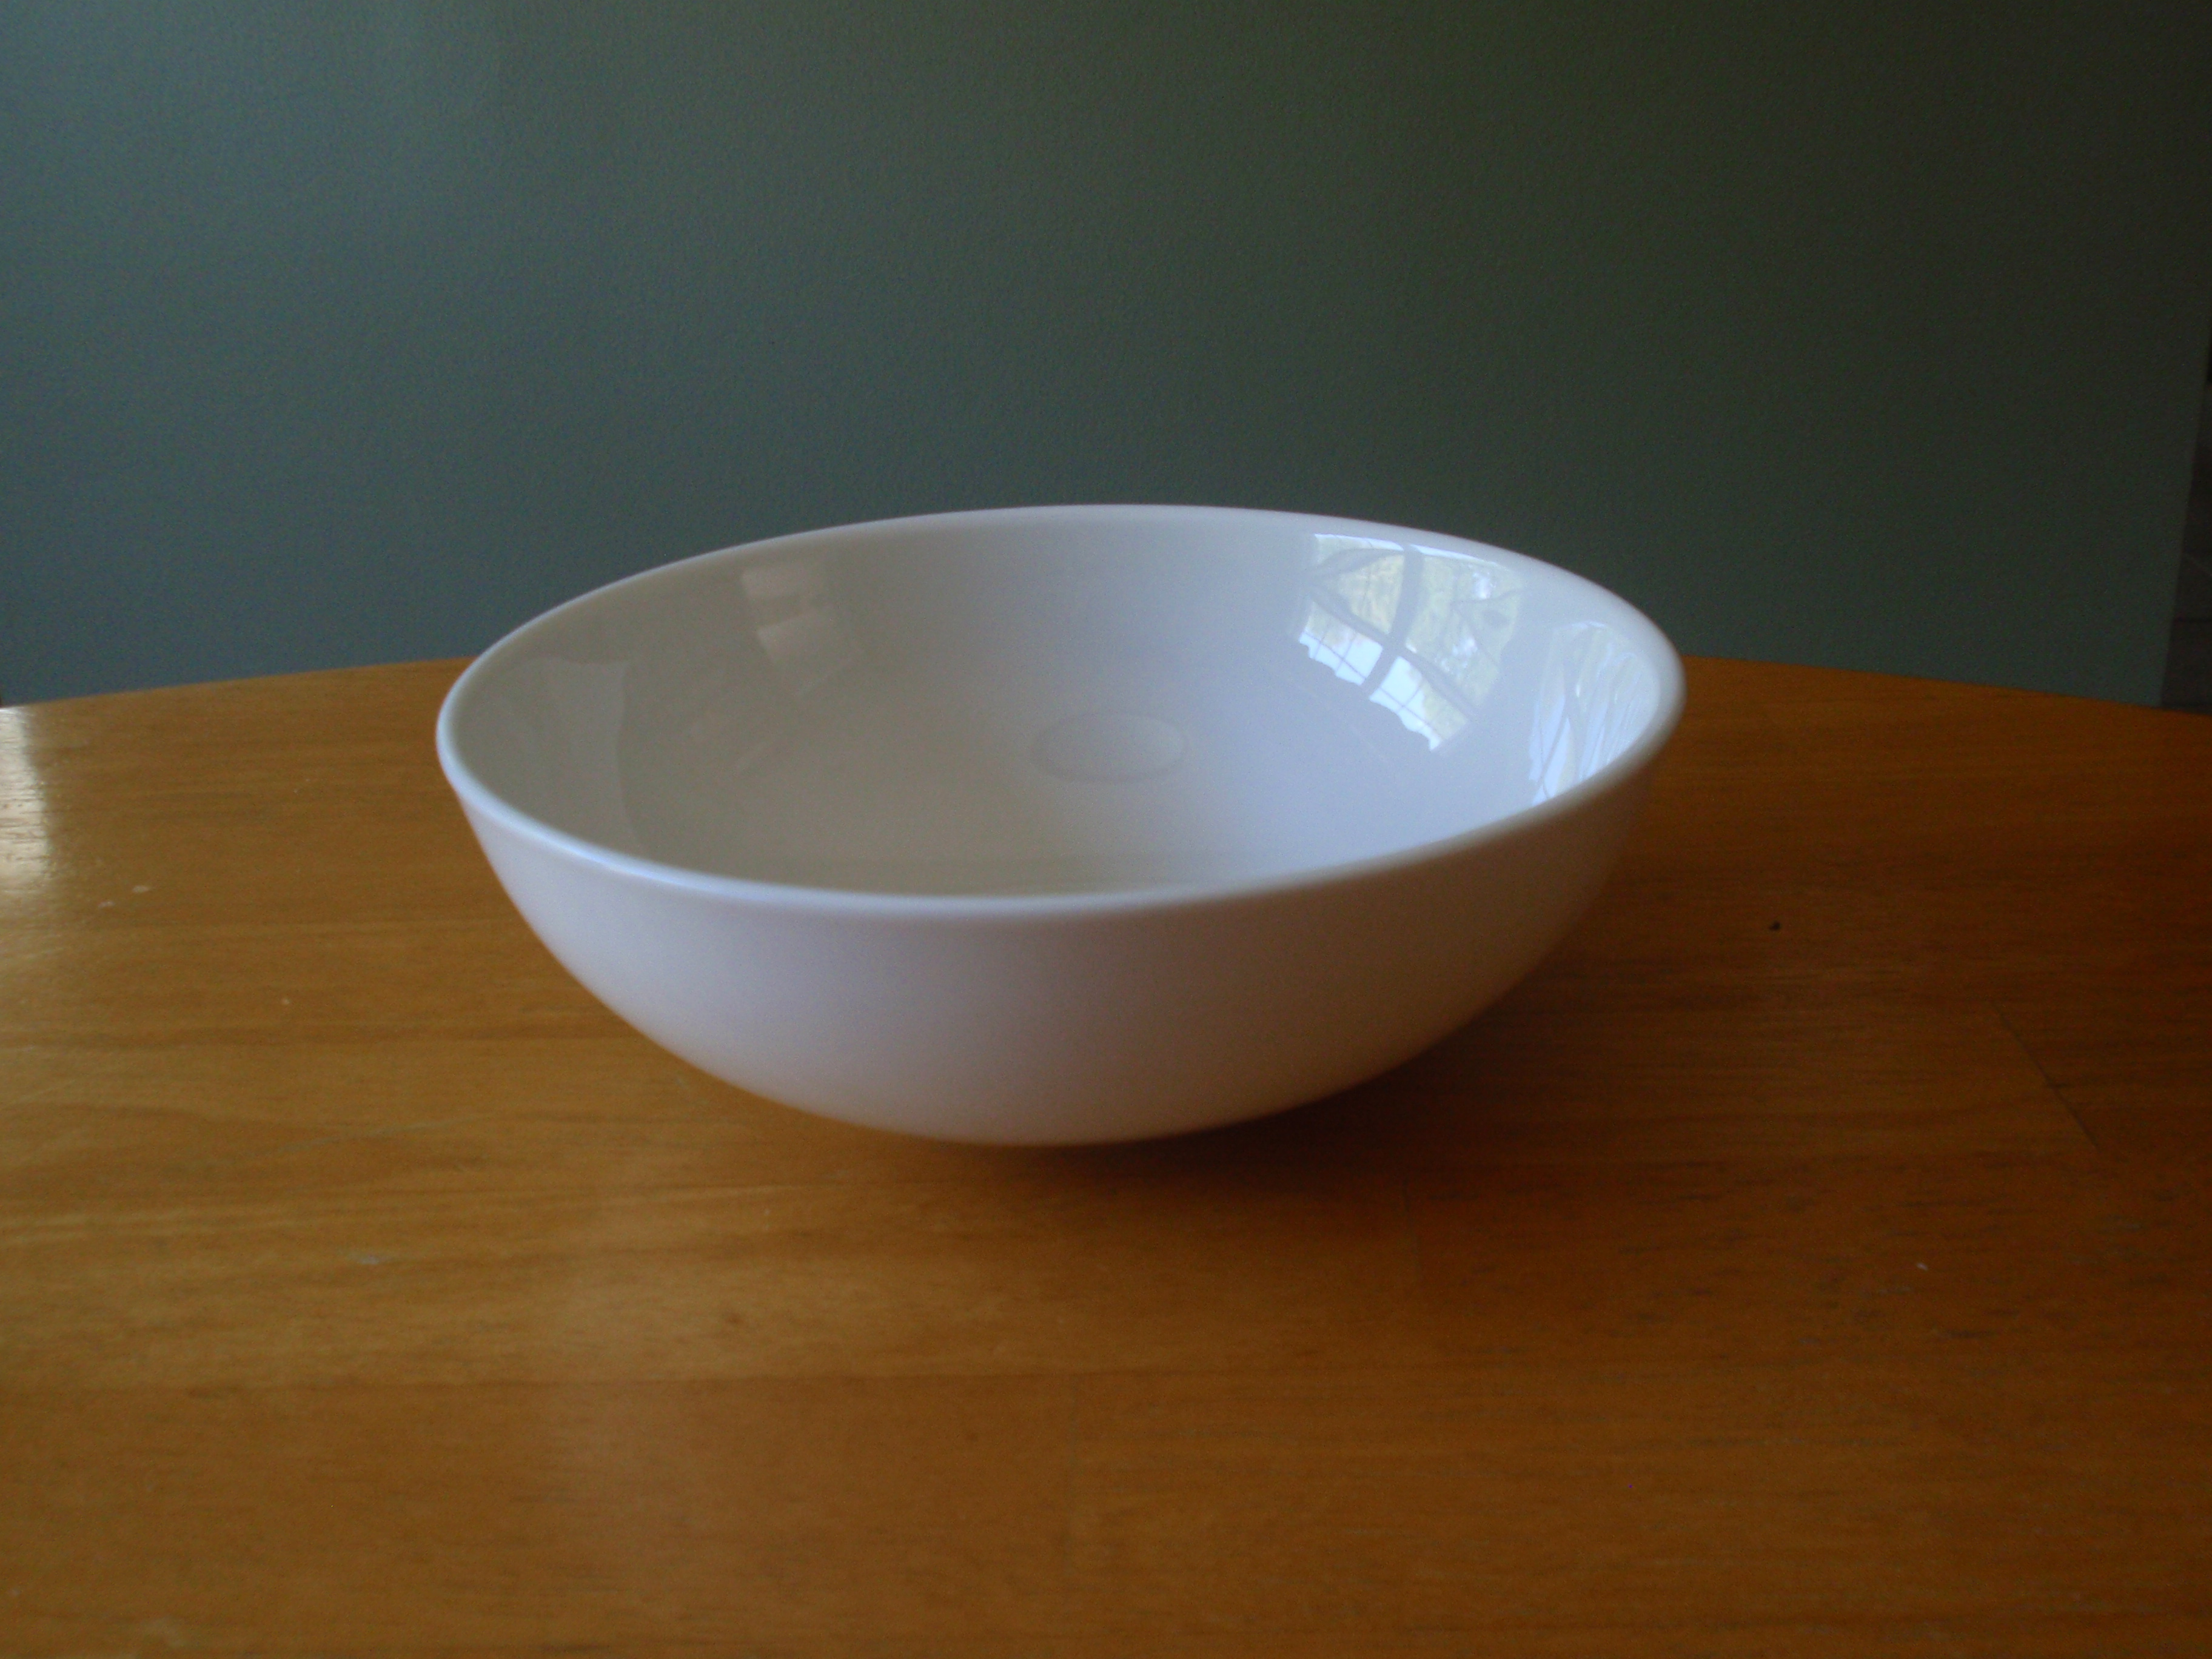 A Bowl By Any Other Name The Hubby Diaries